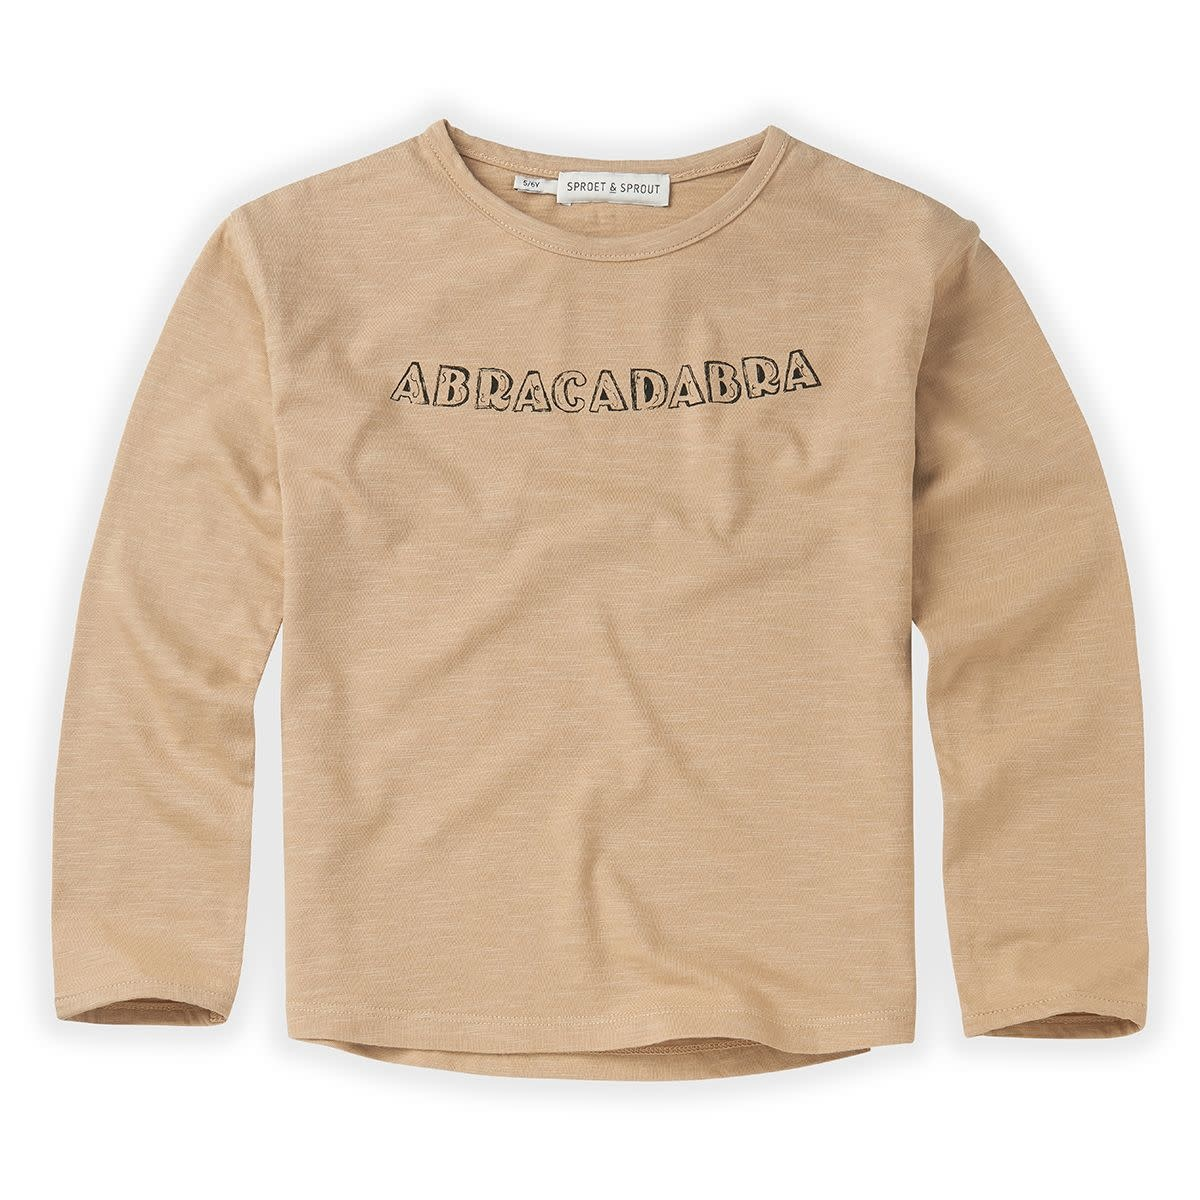 Sproet & Sprout Sproet&Sprout - T-shirt abracadabra text nougat